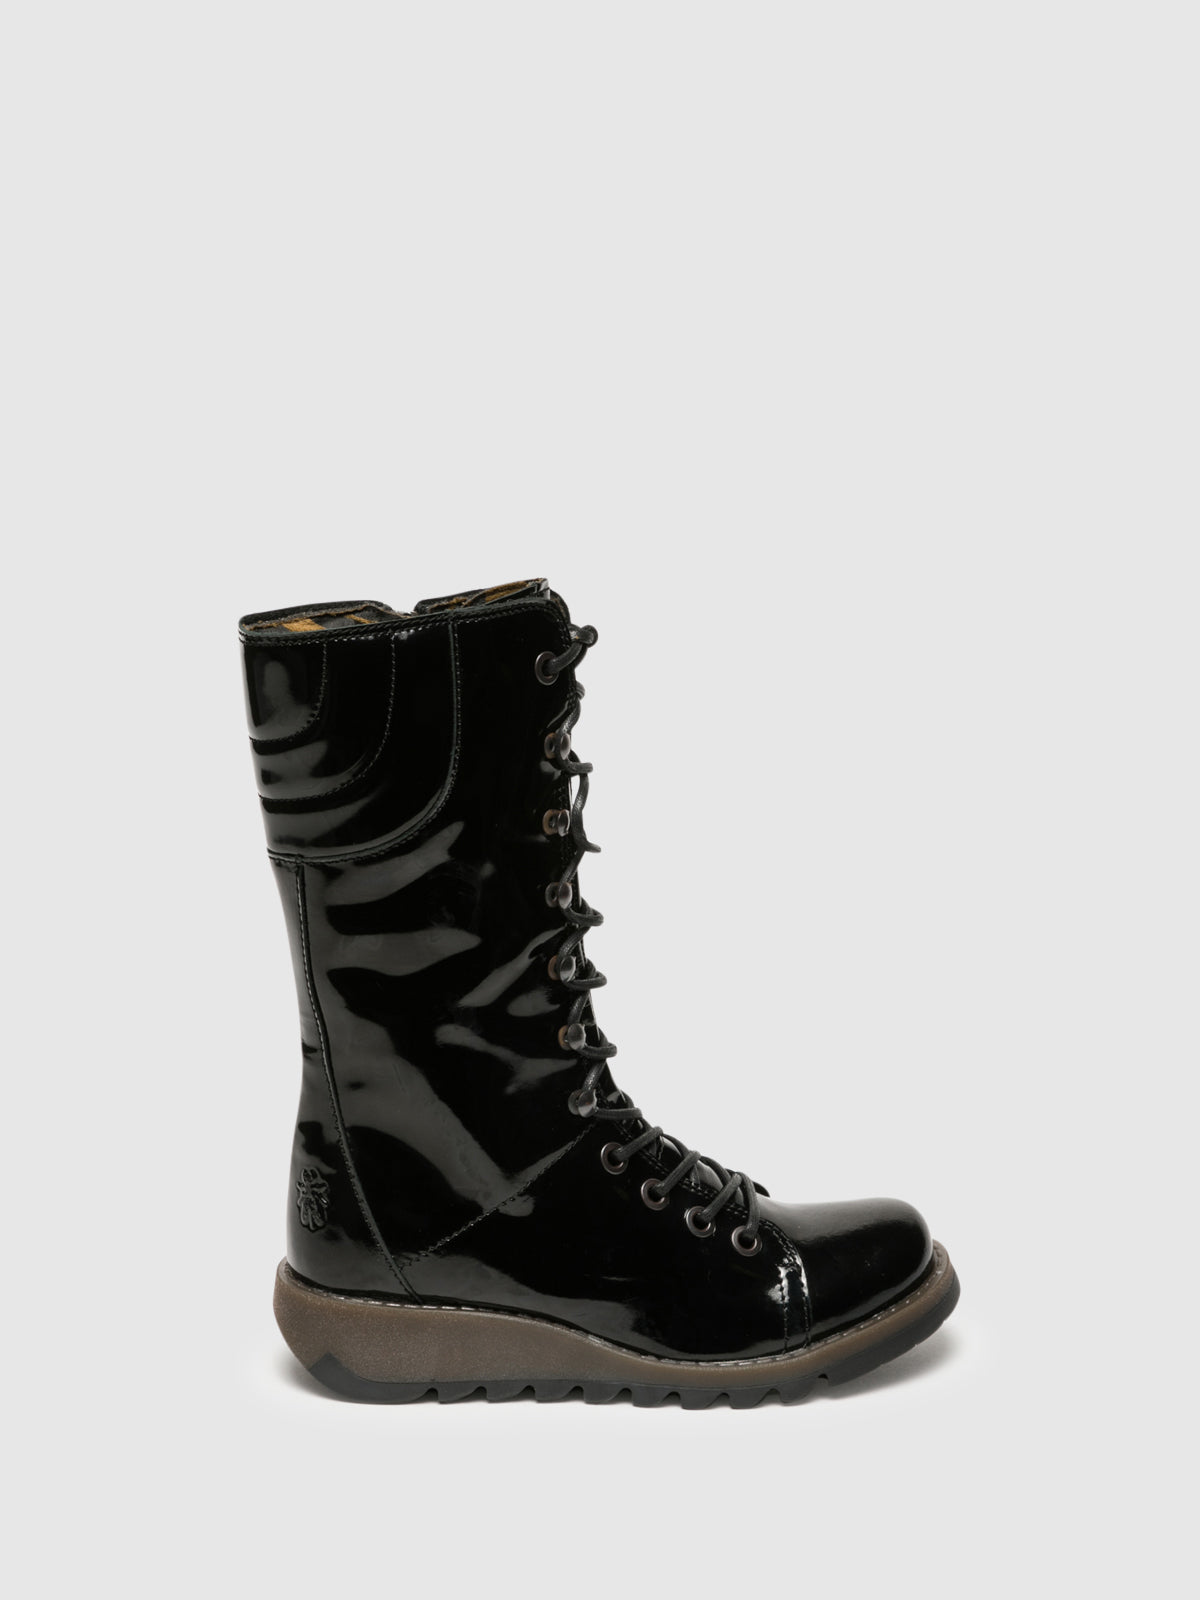 Fly London Botas con Cordones en color Negro Grafito